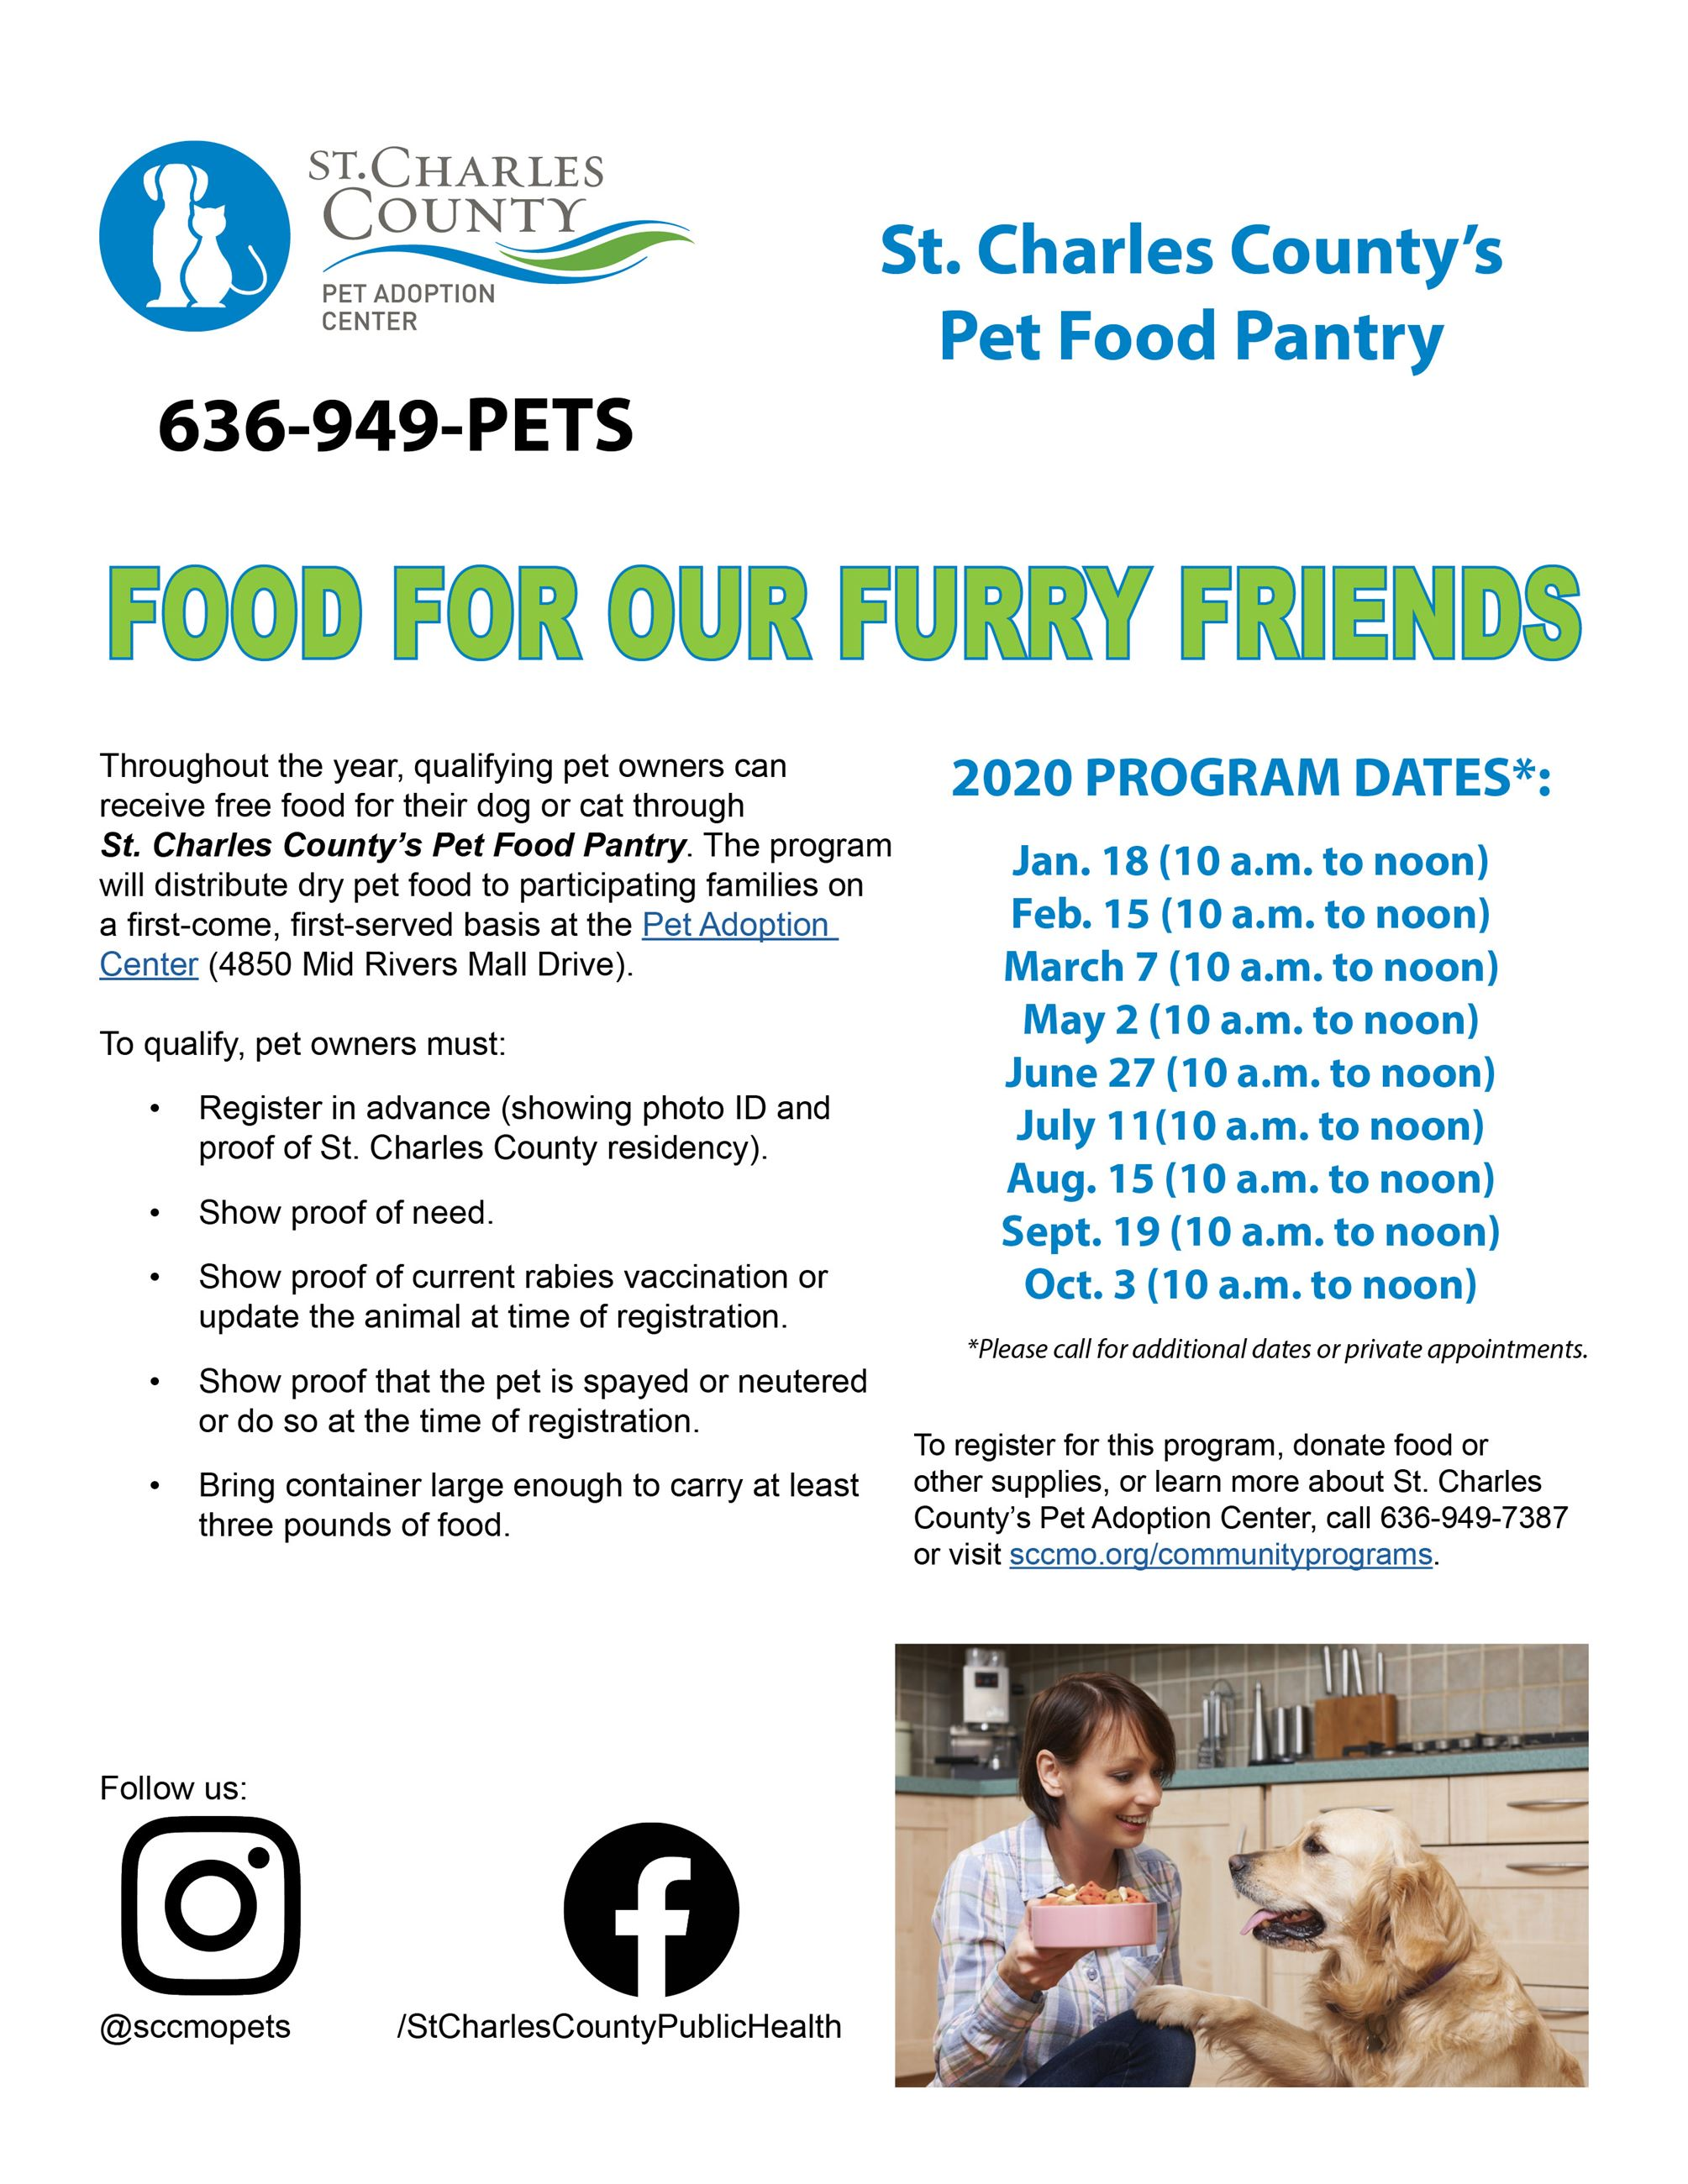 Pet Food Pantry_list of dates